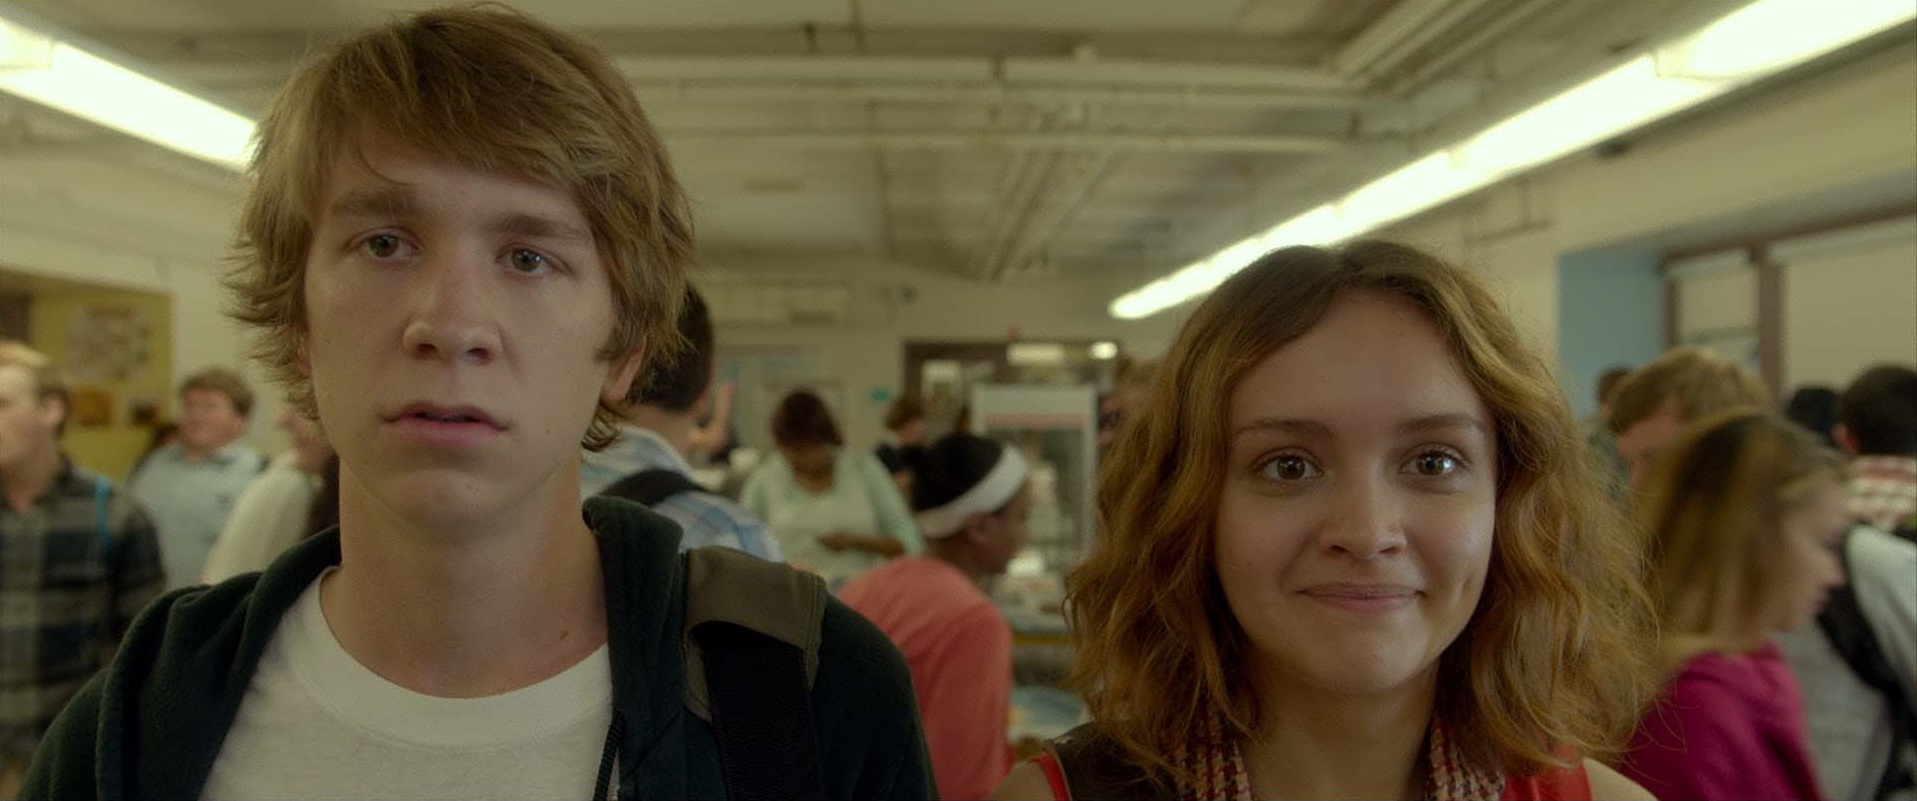 thomas mann and olivia cooke ME AND EARL AND THE DYING GIRL